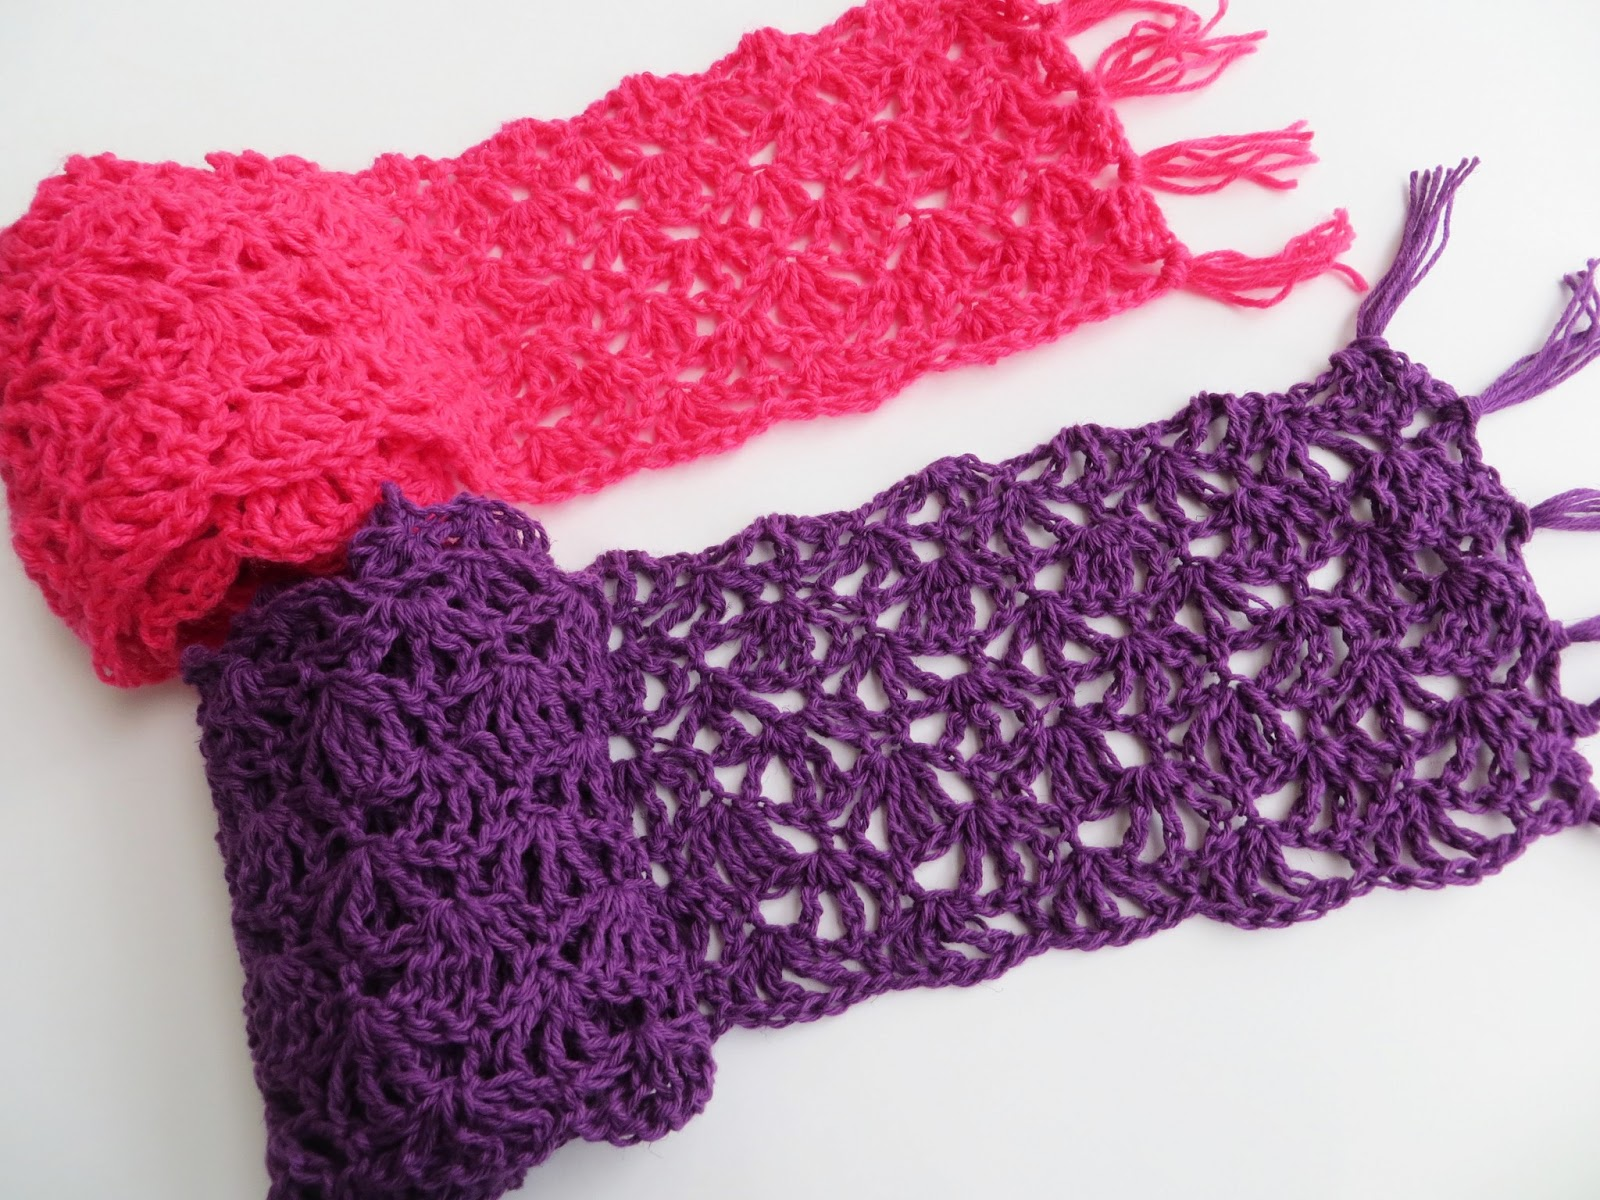 Free Crochet Pattern Quick : Lacy Crochet: Quick and Easy Crochet Scarf, my free pattern